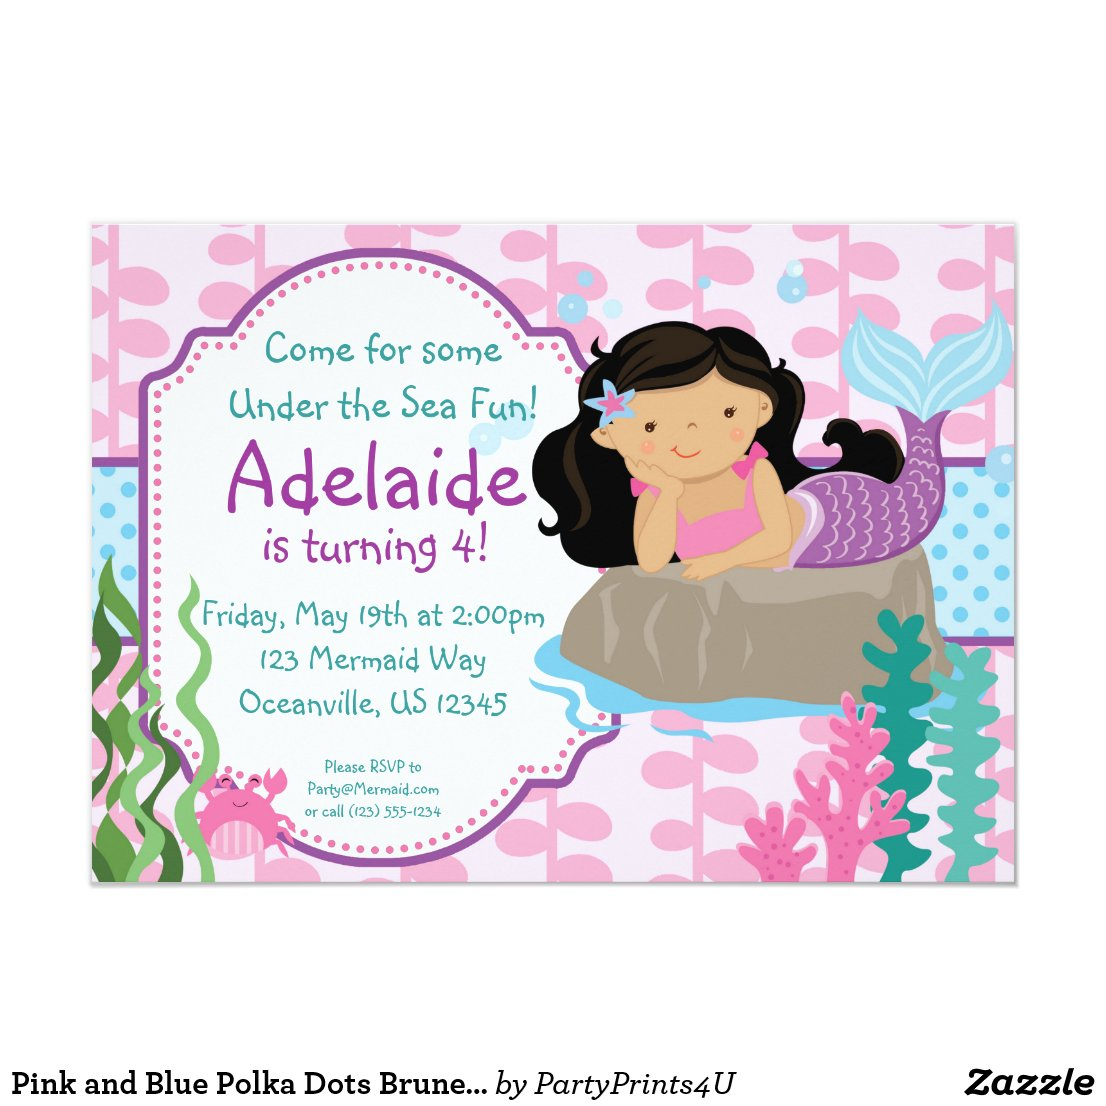 Pink and Blue Polka Dots Brunette Mermaid Birthday Card